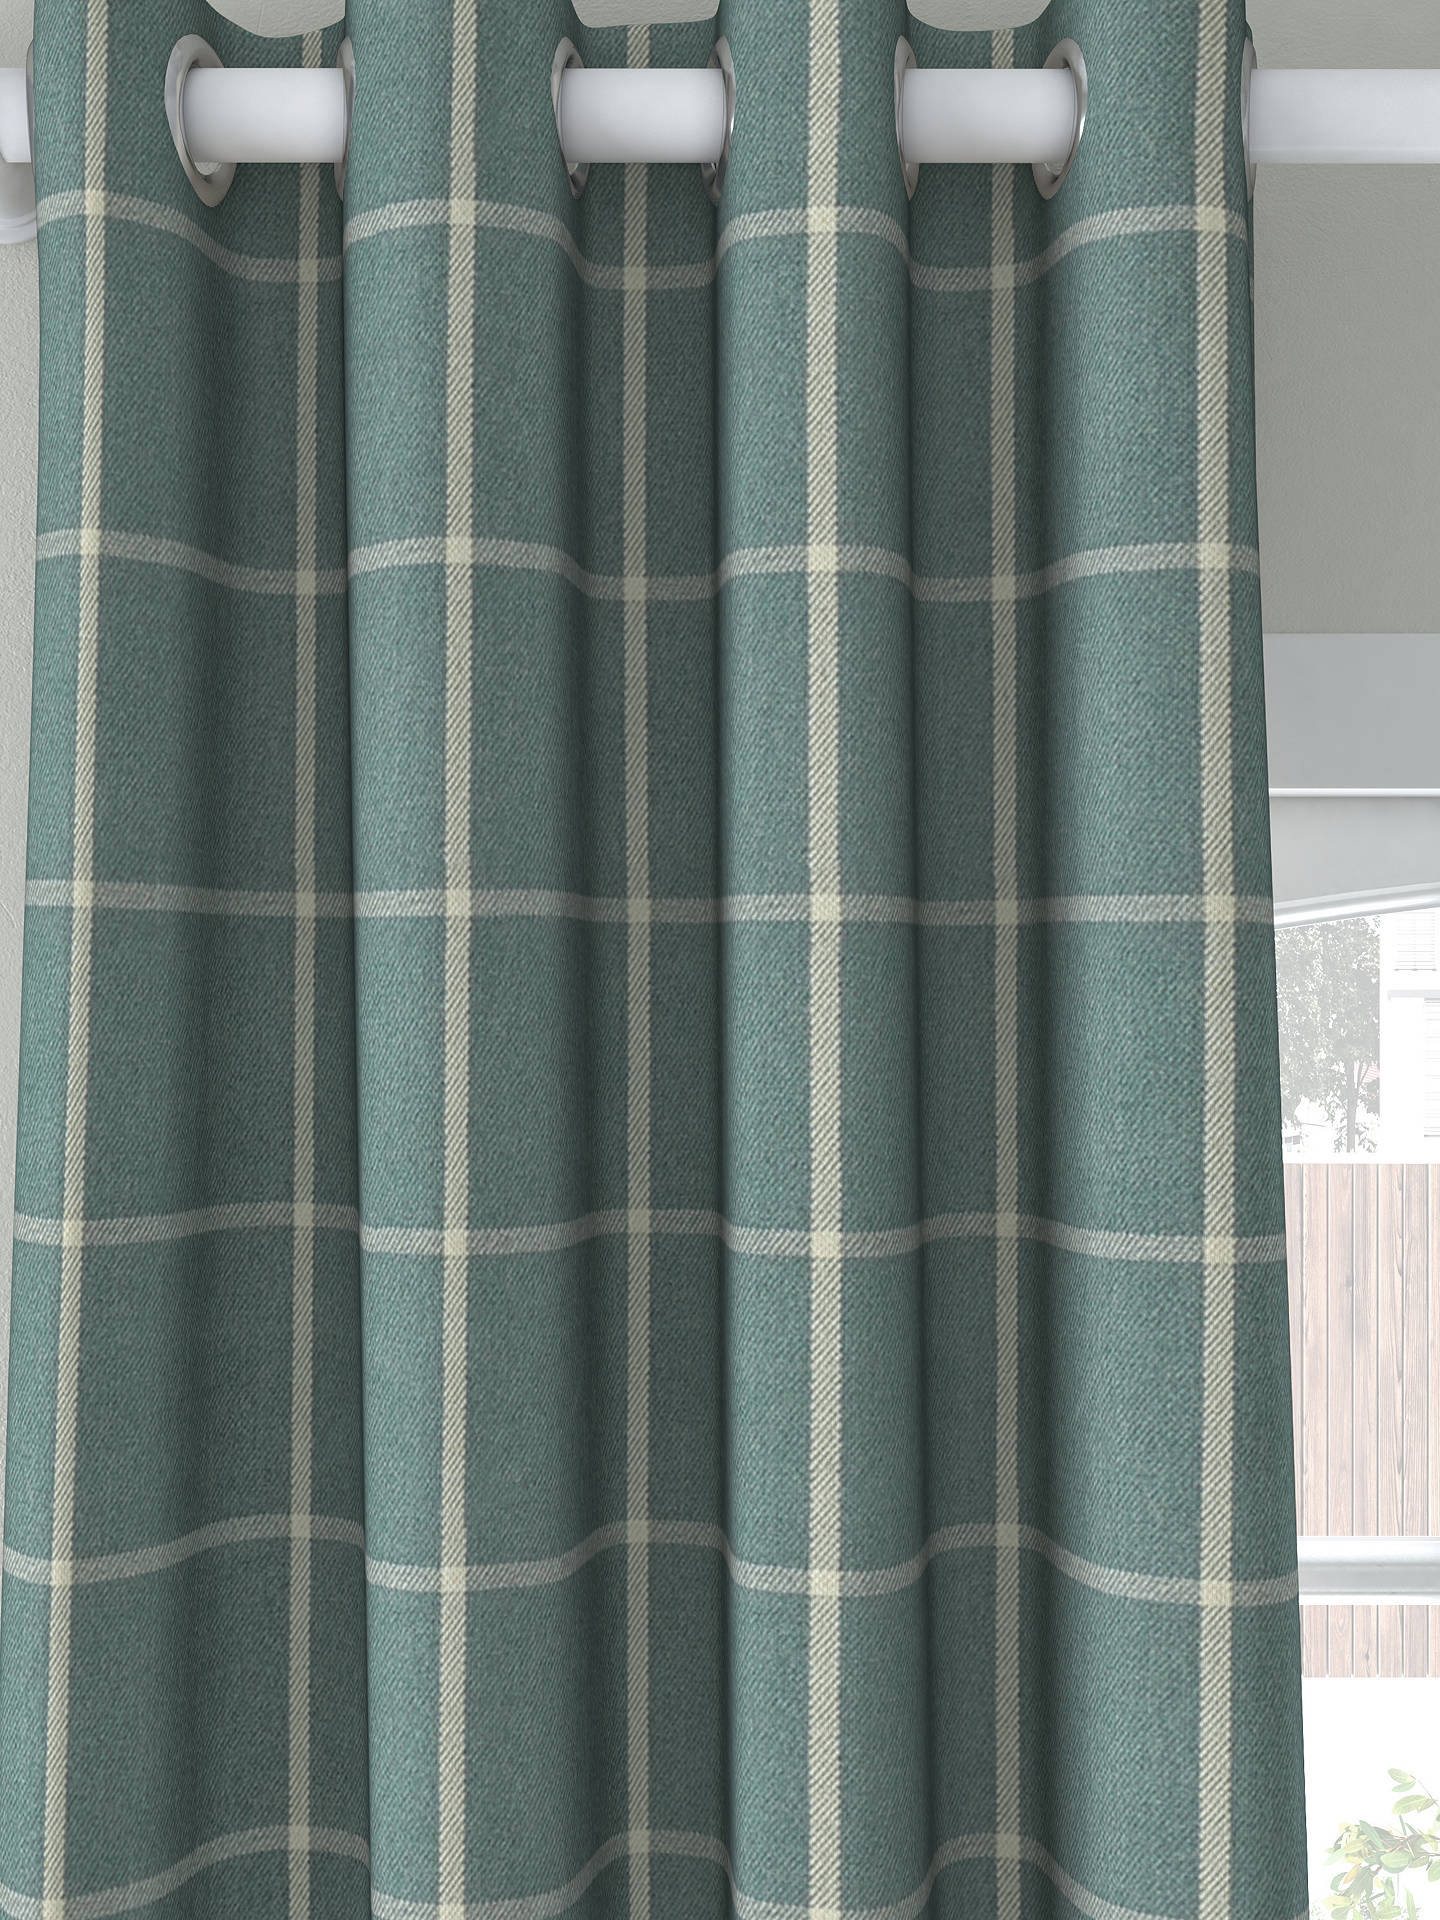 Buy John Lewis & Partners Check Pair Lined Eyelet Curtains, Nettle, W167 x Drop 137cm Online at johnlewis.com